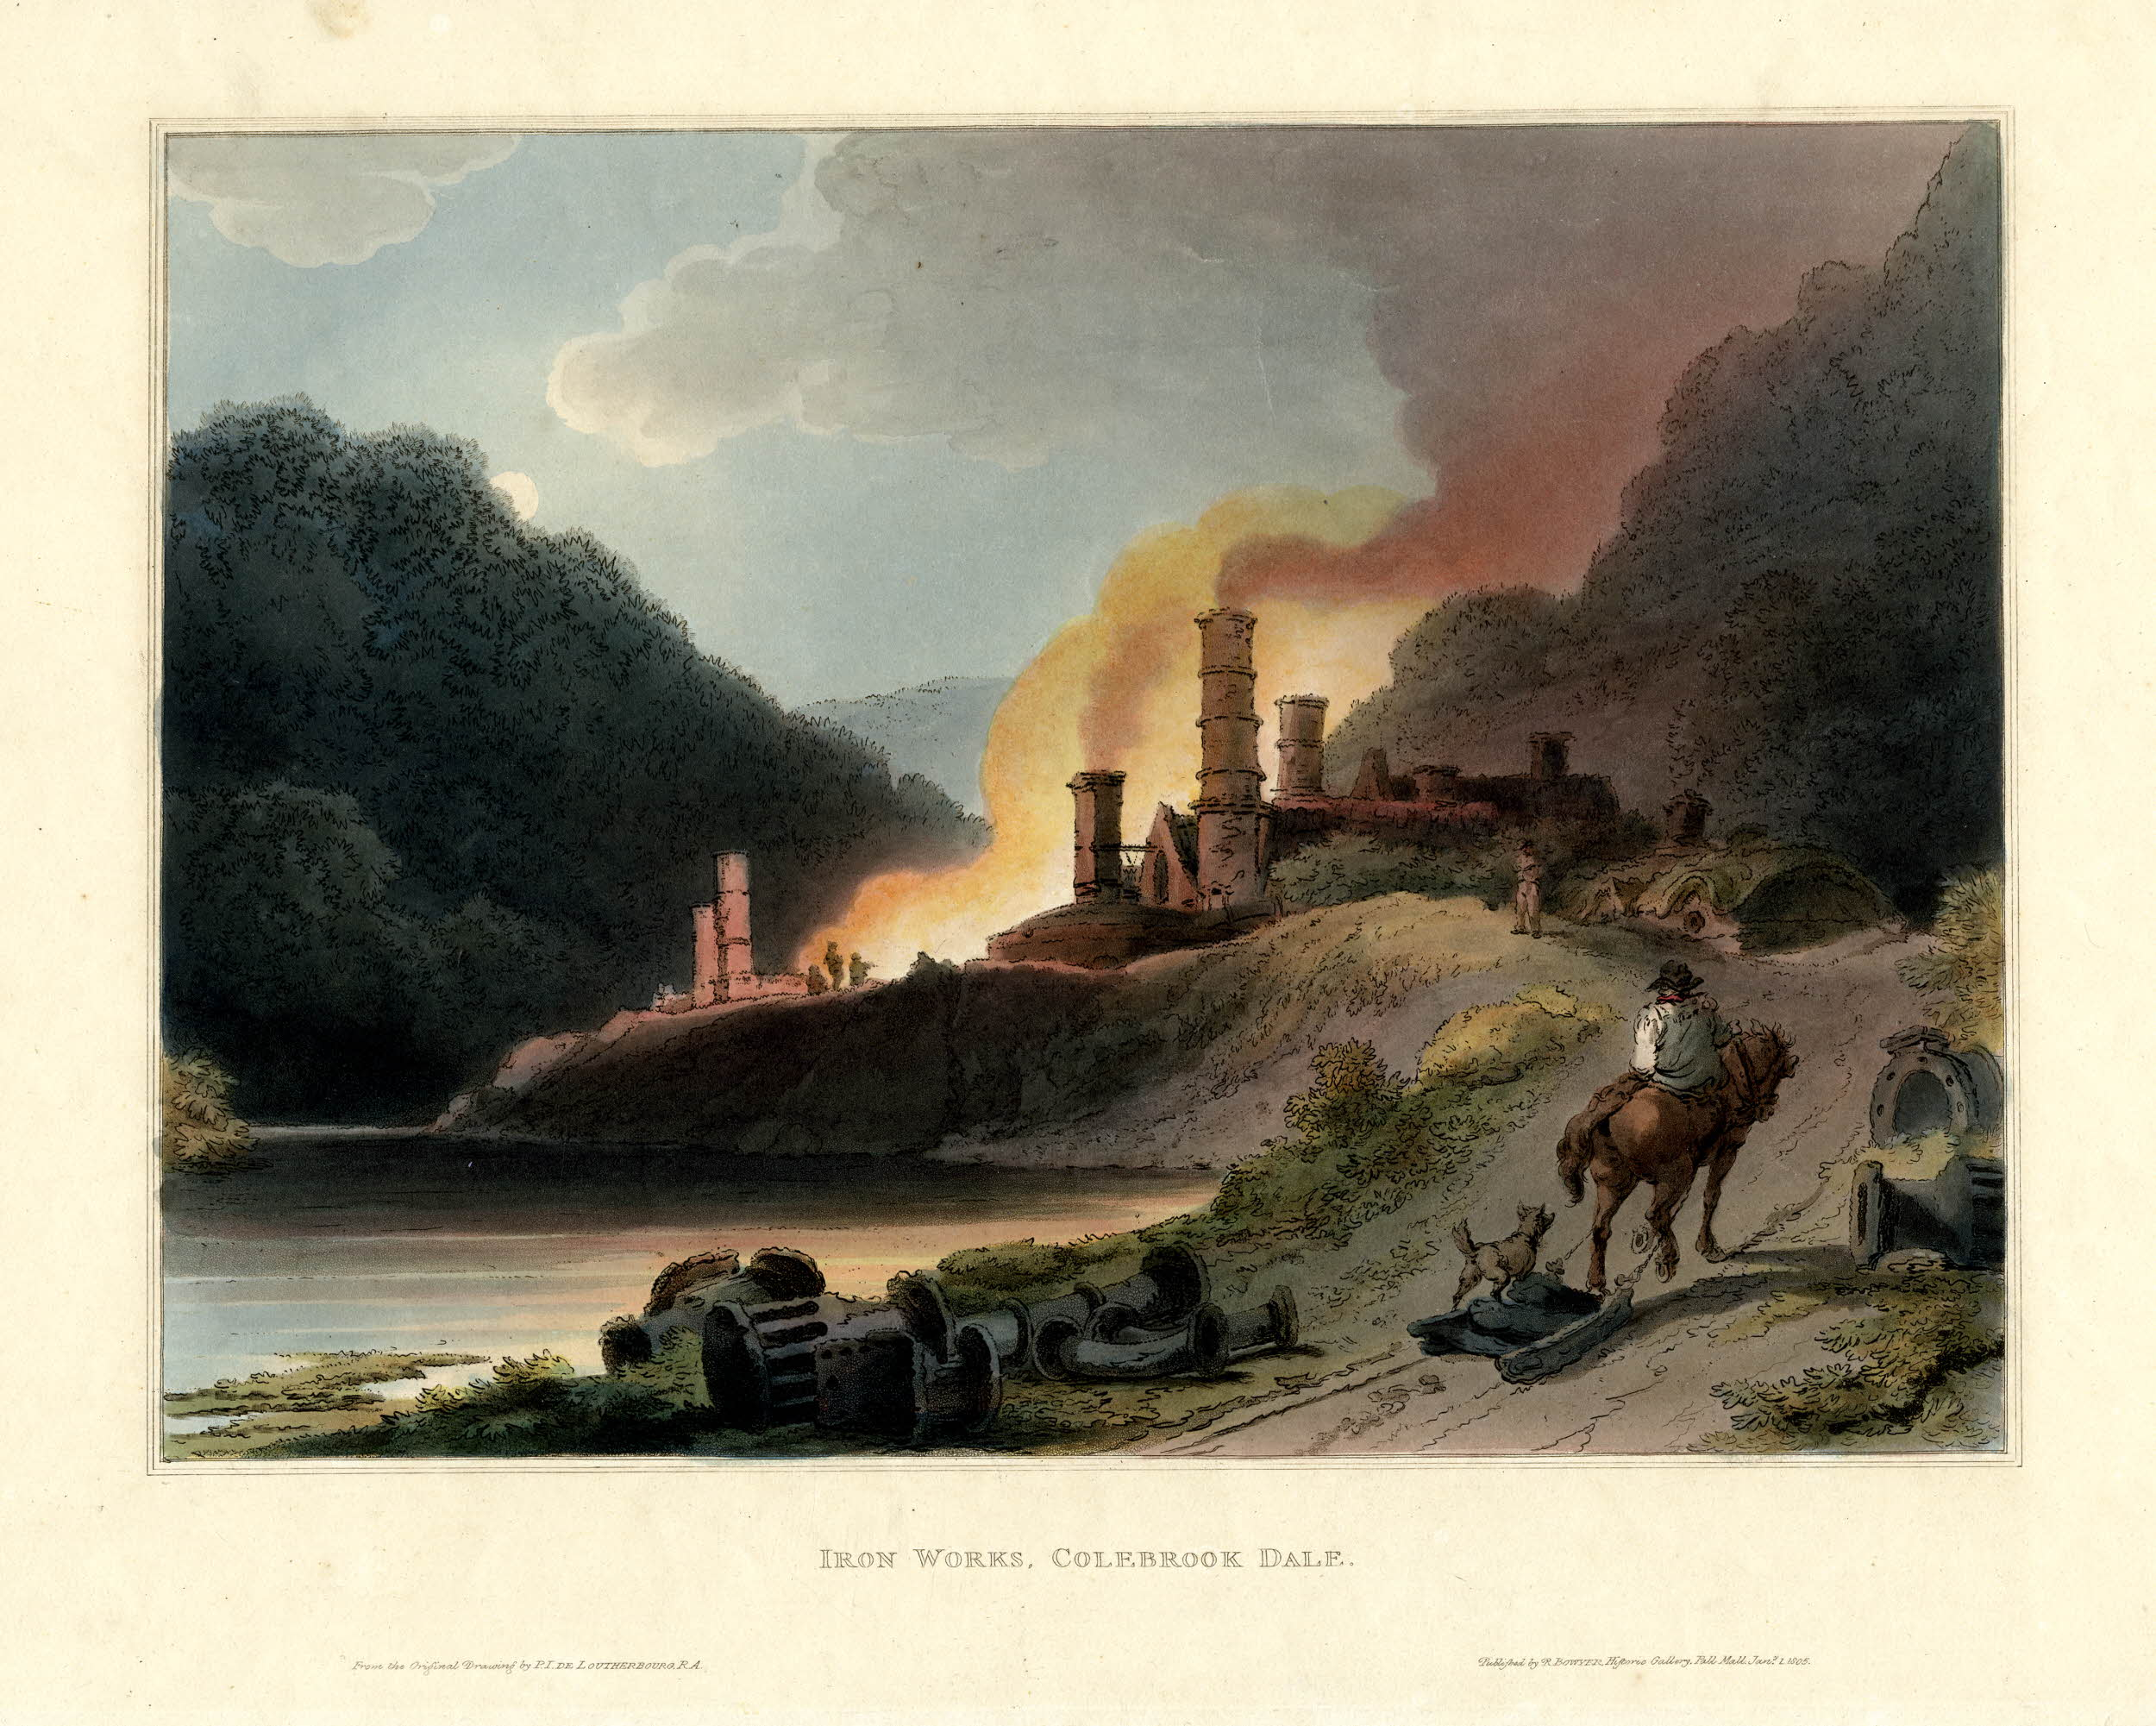 Philip de Loutherbourg, Iron Works, Coalbrookdale, lithograph from Picturesque Scenery of England and Wales, 1805, 31 x 38.7 cm